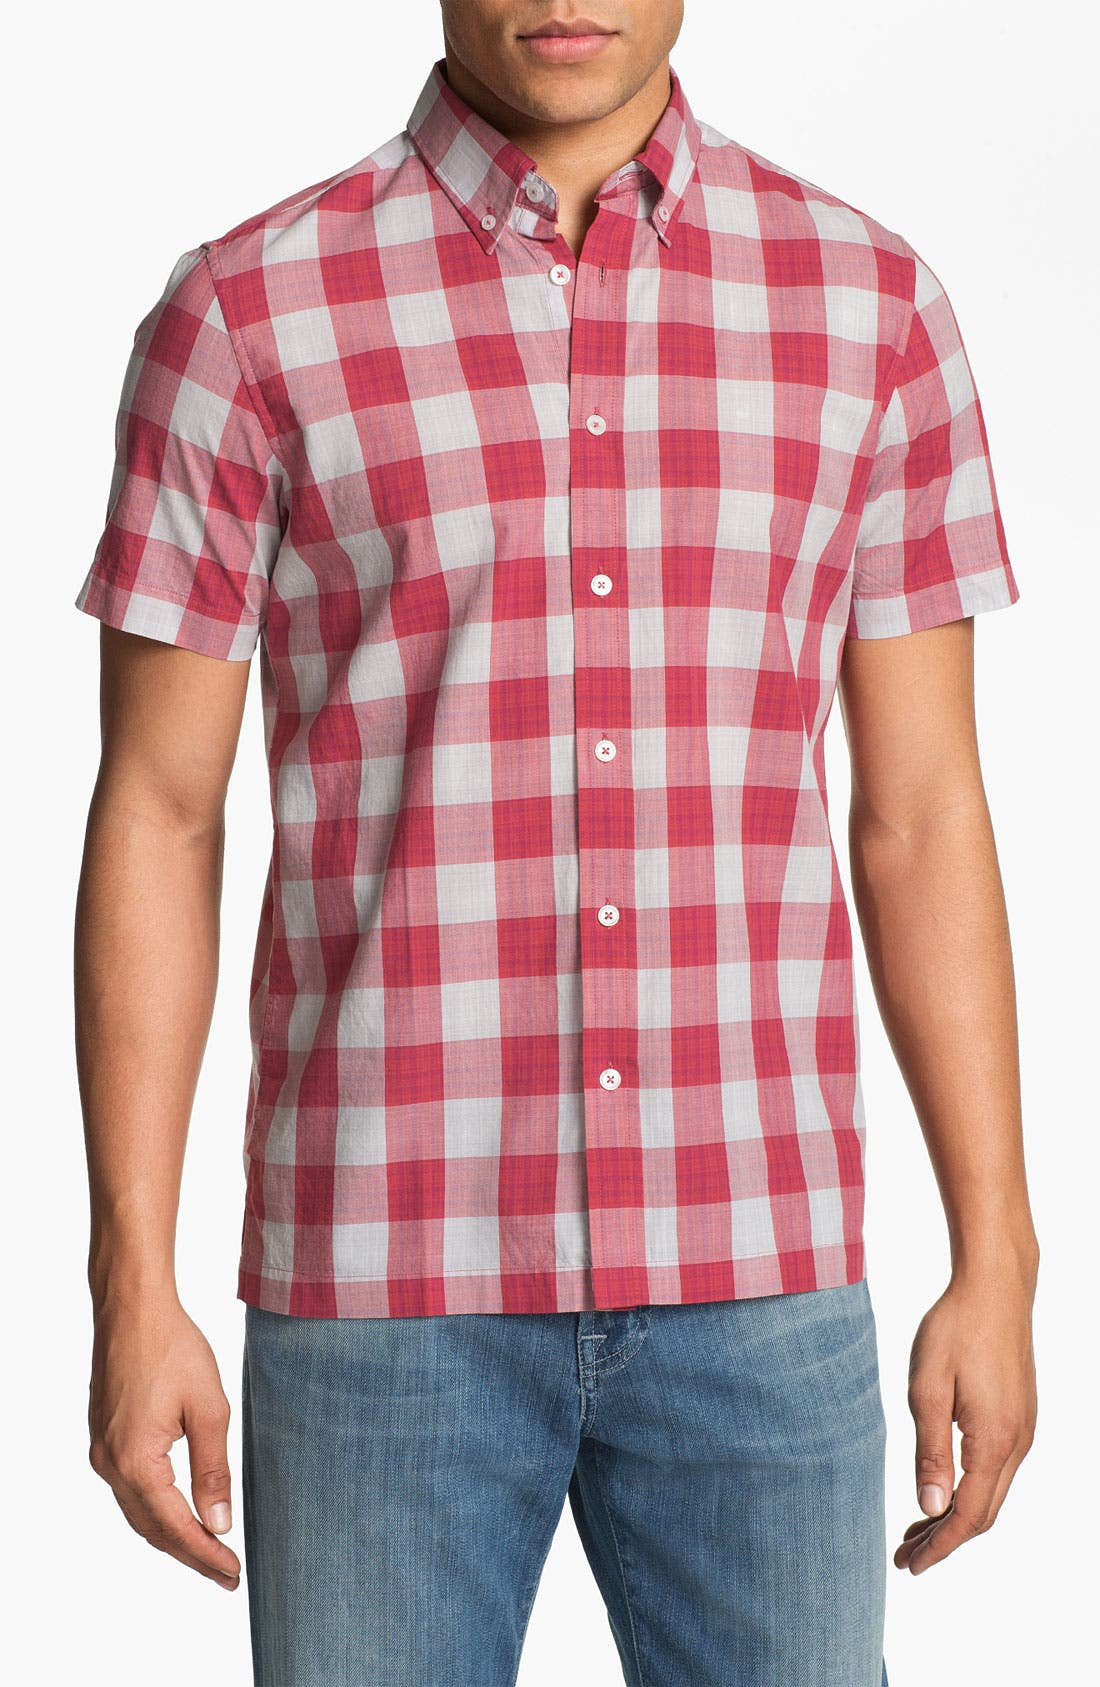 Alternate Image 1 Selected - Ben Sherman Gingham Check Short Sleeve Woven Shirt